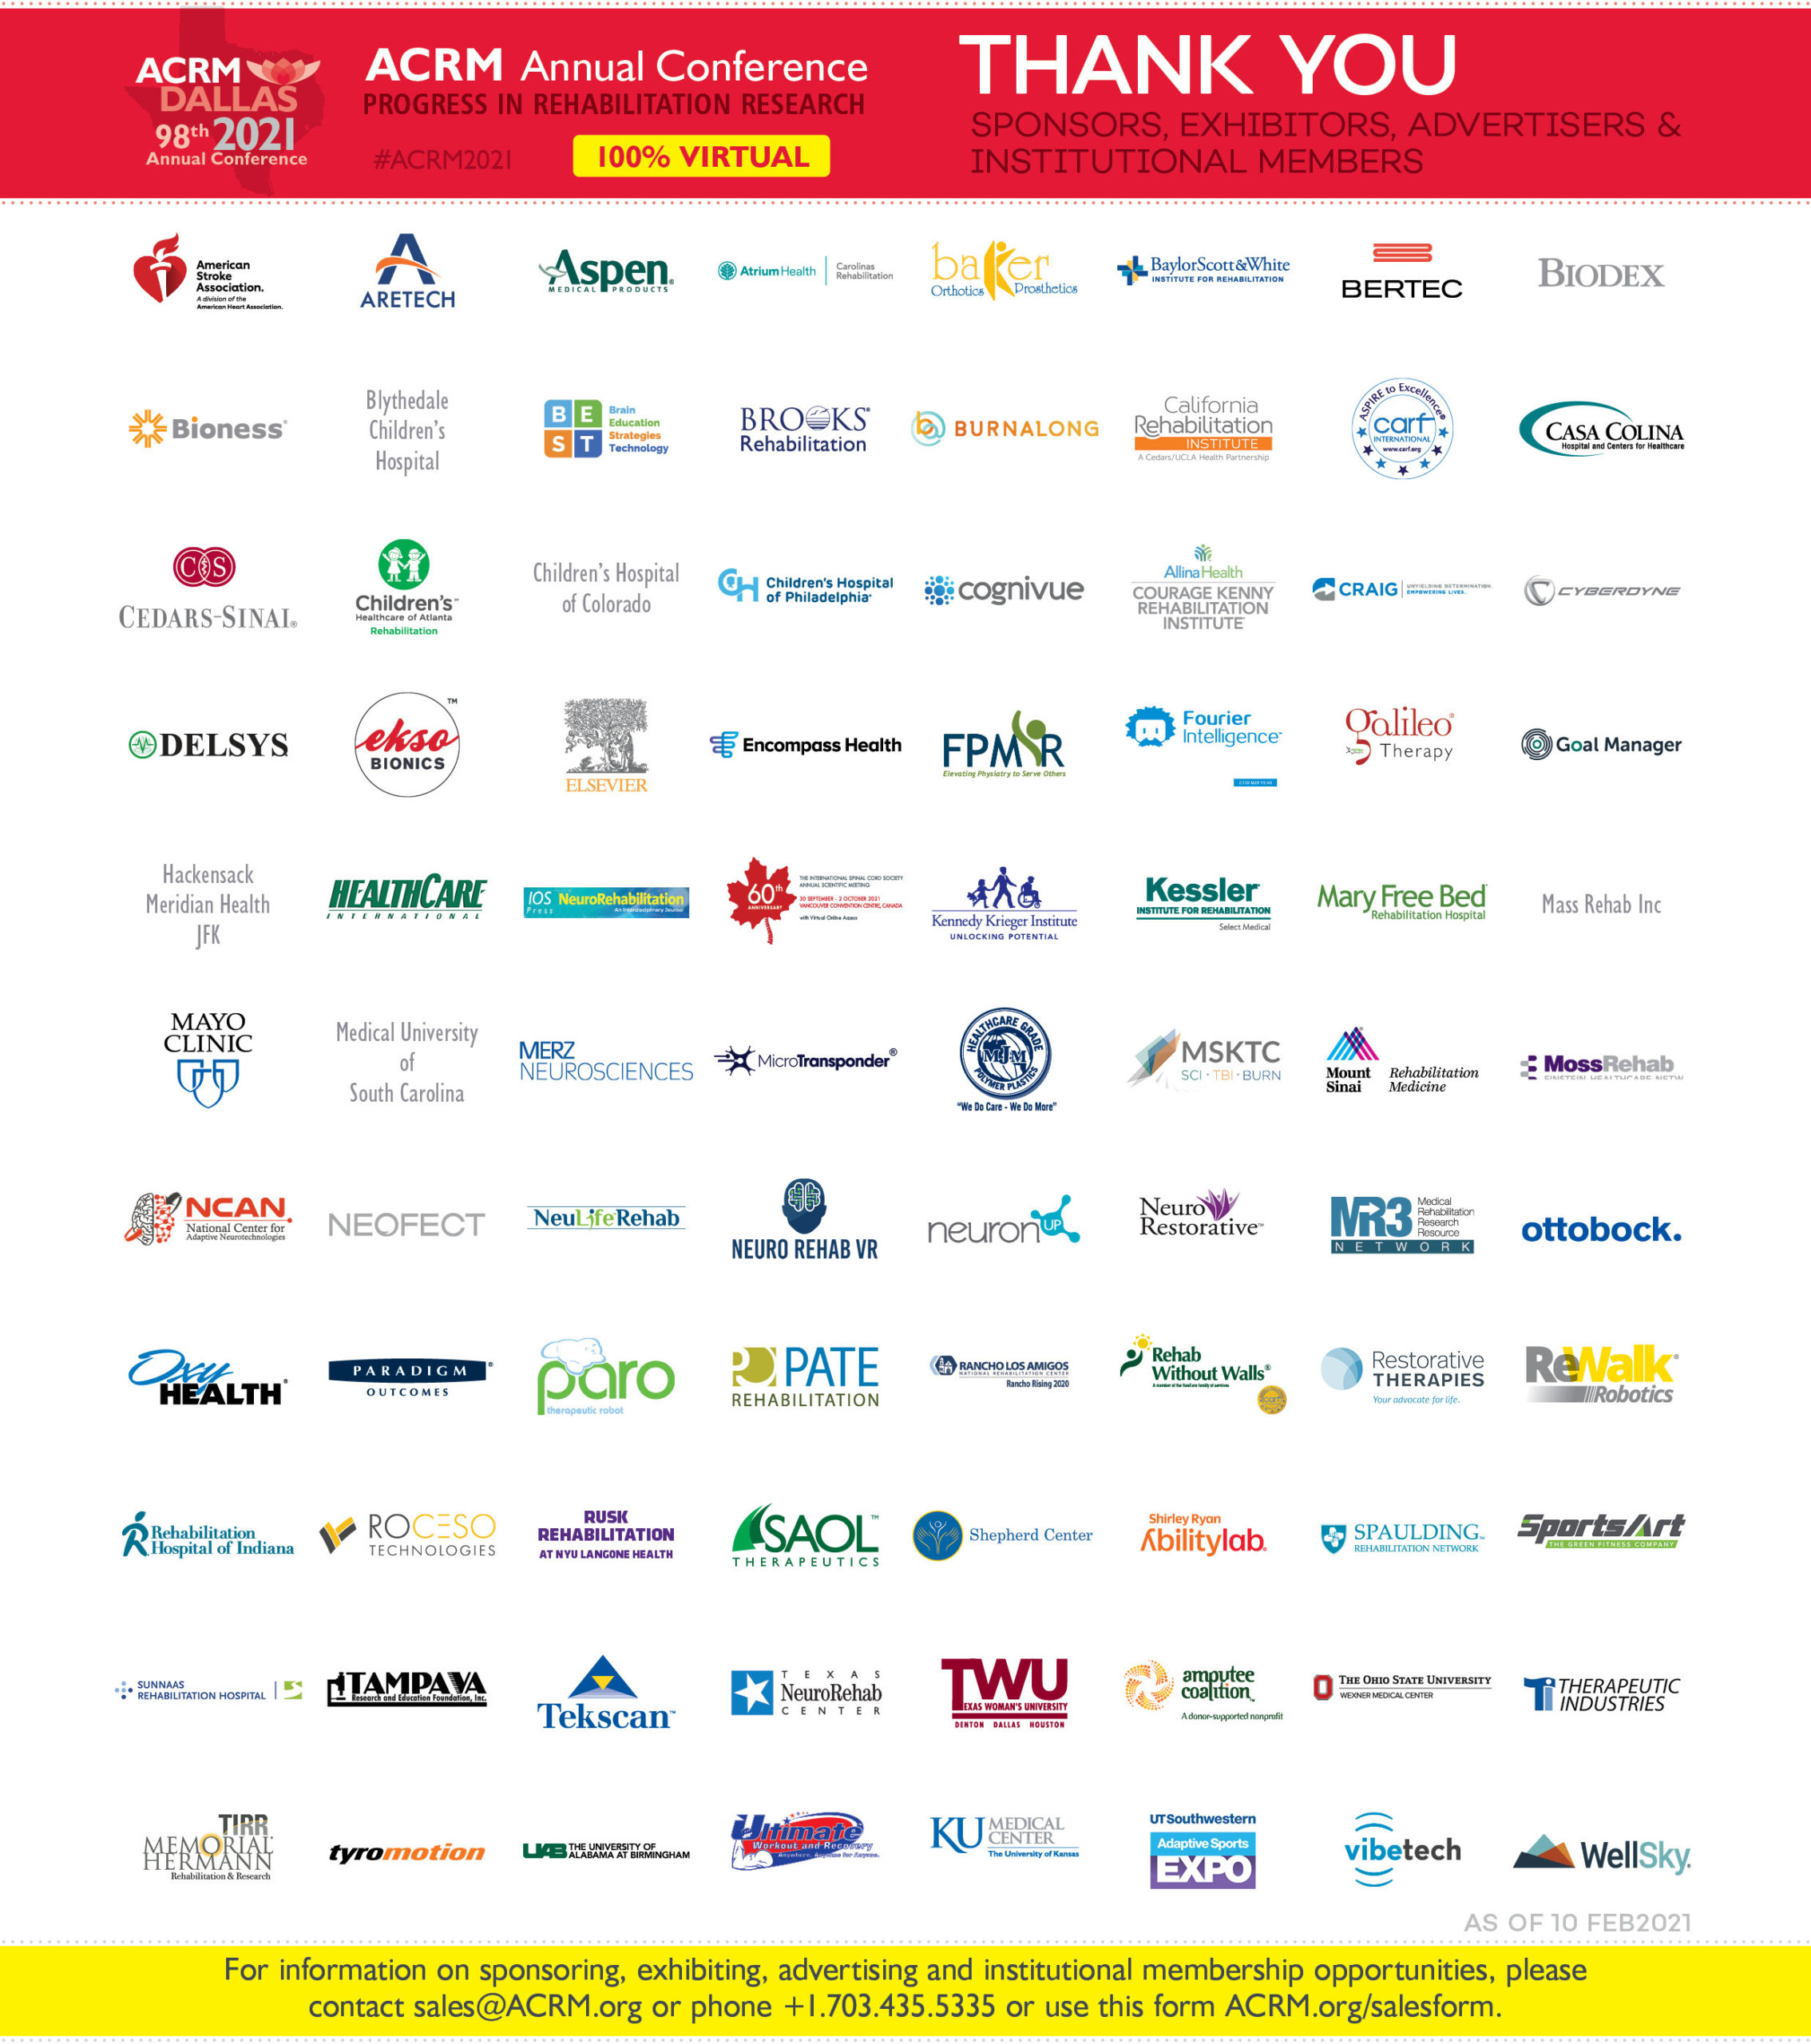 ACRM 2021 Sponsors, Exhibitors, Advertisers Thank You Footer image